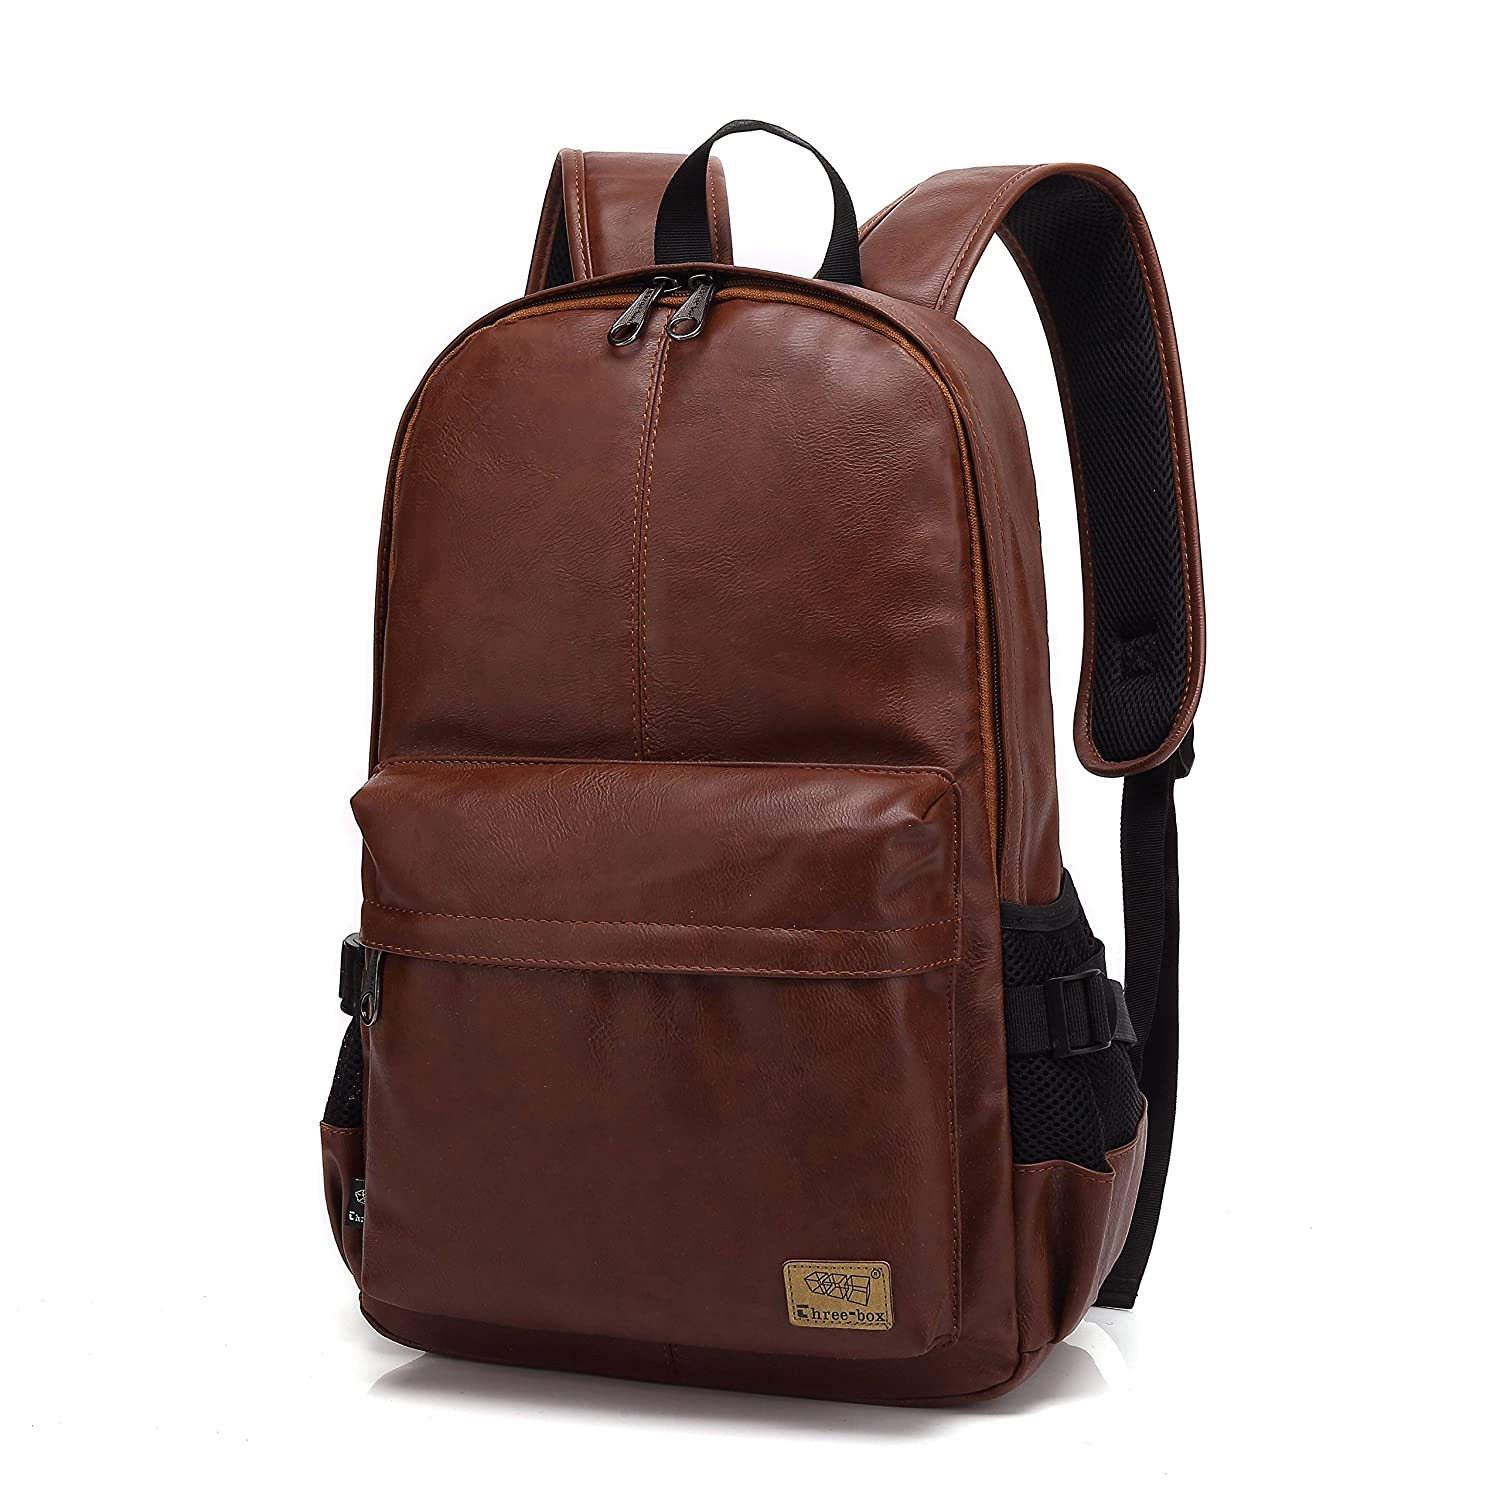 1dce676a4e5d Amazon.com  ZEBELLA Vintage PU Leather Laptop Backpack School Book Bag  College Daypack  Computers   Accessories